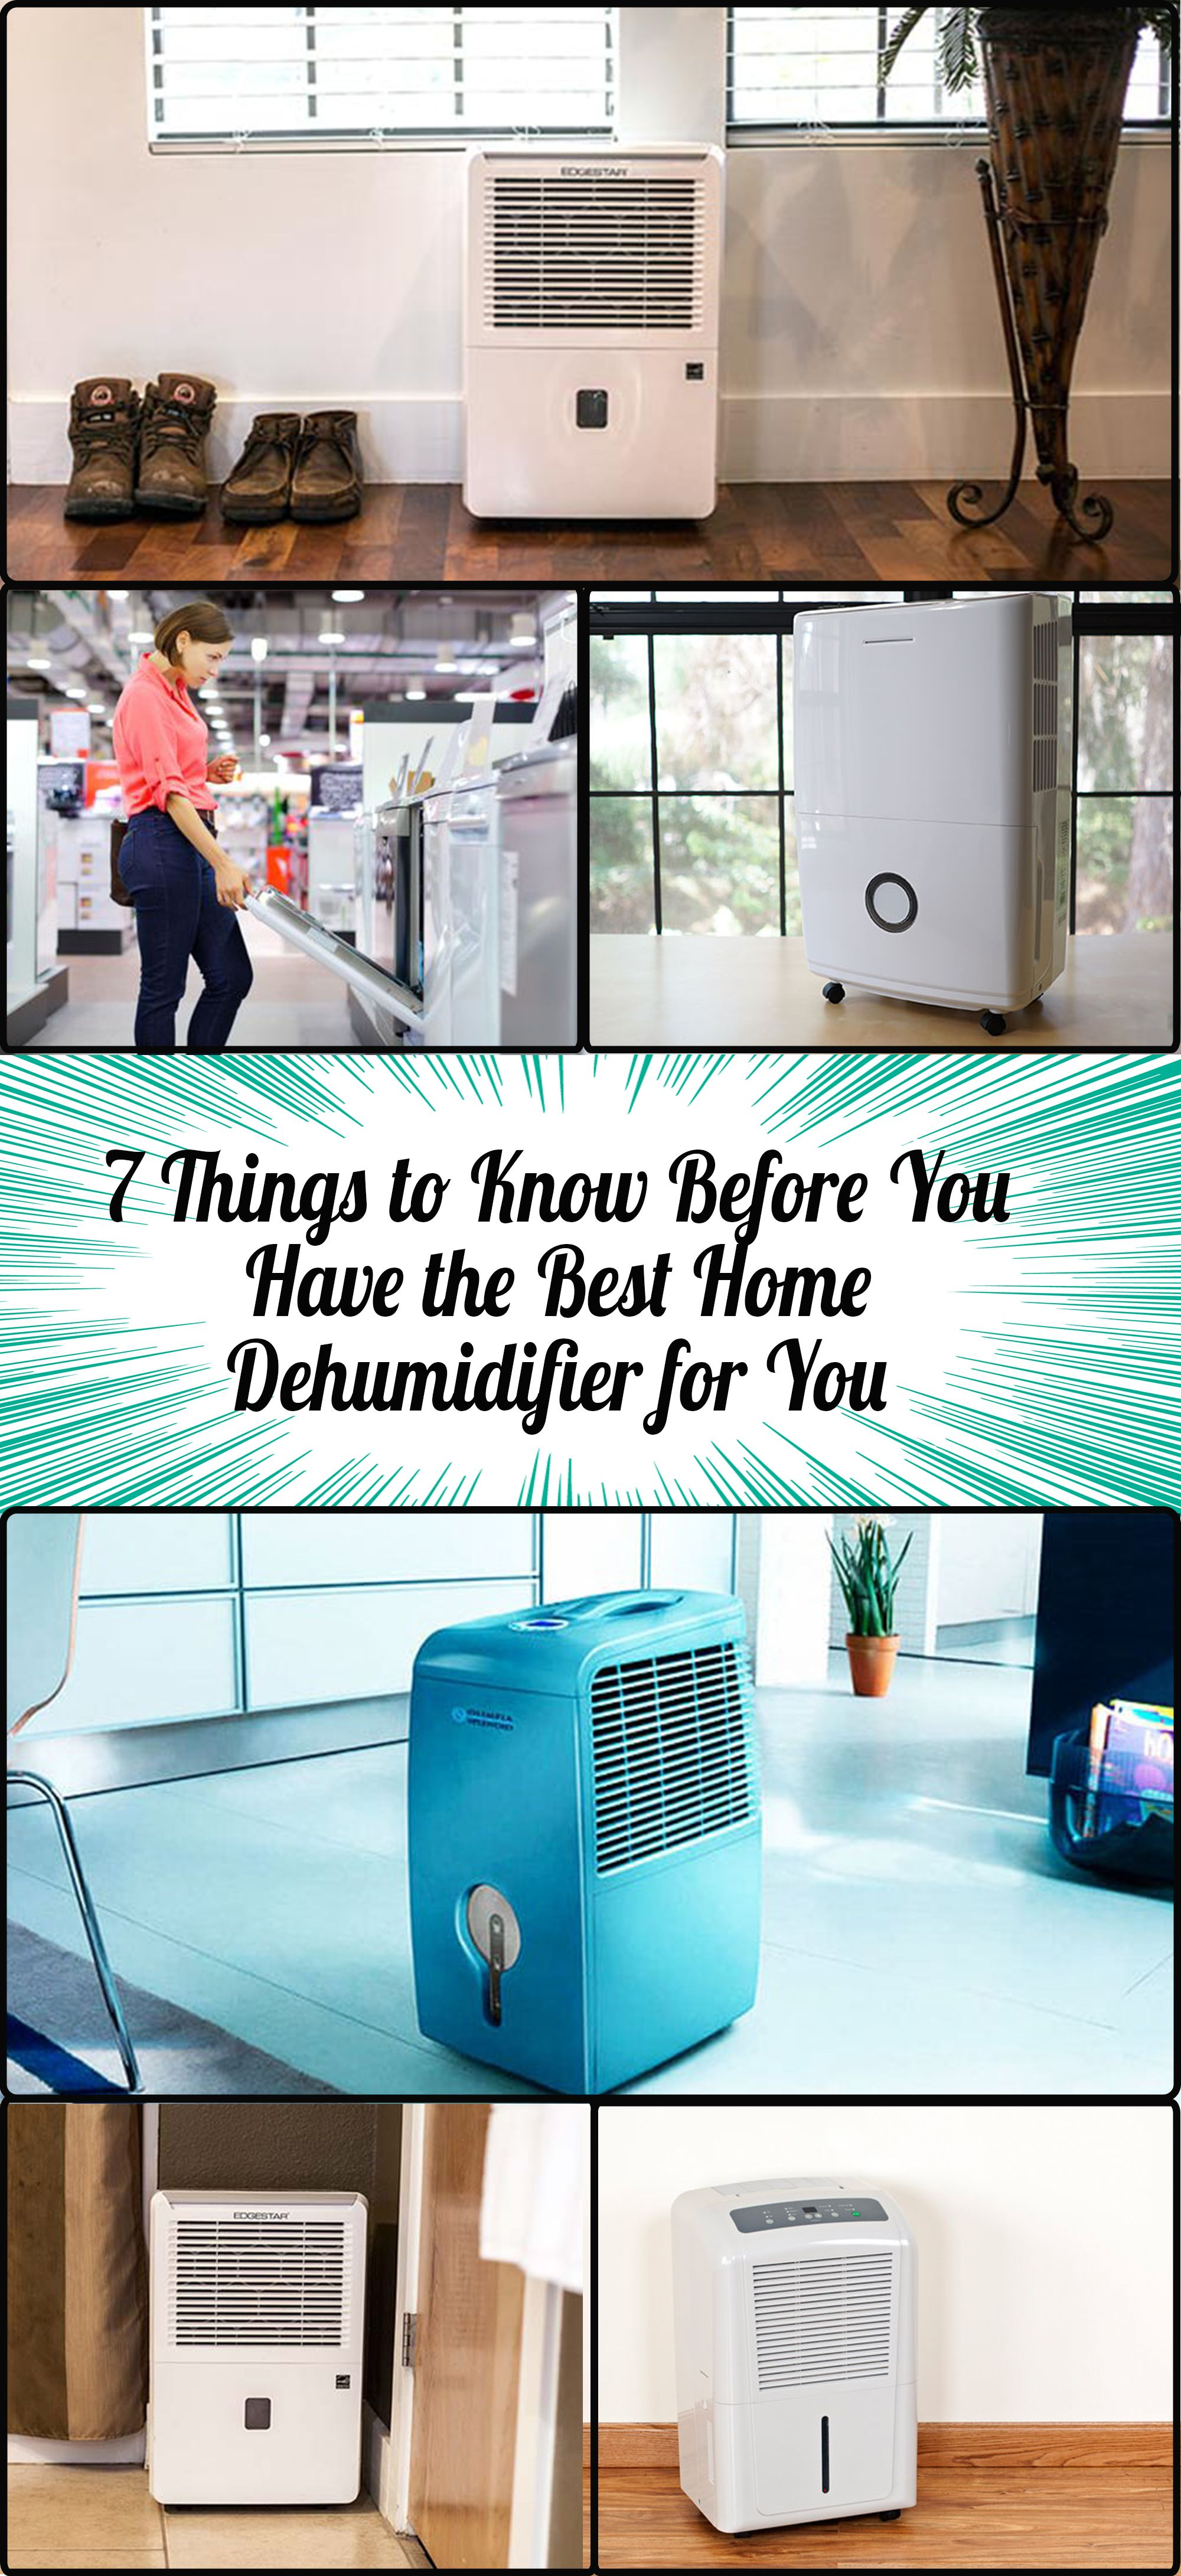 7 Things to Know Before Having the Best Home Dehumidifier